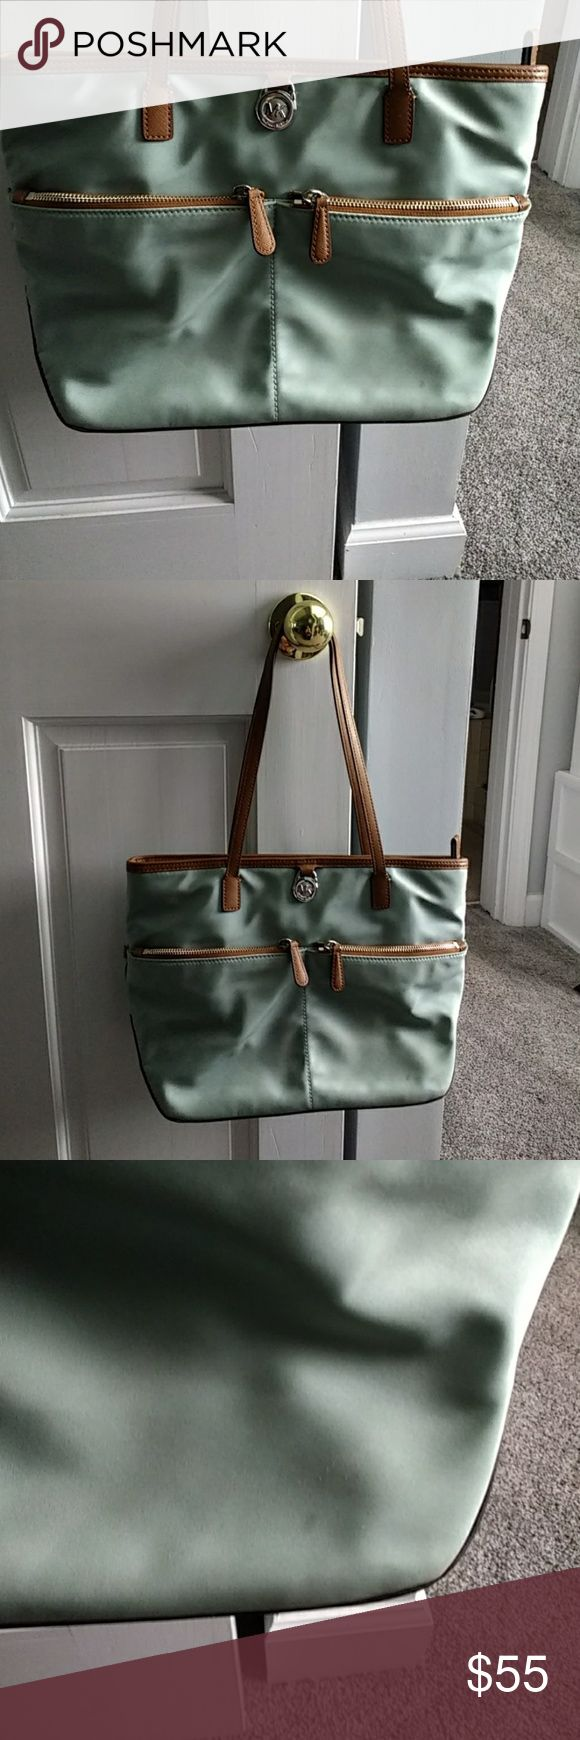 Michael michael Kors, vinyl leather handbag MMK, vinyl, leather trim handbag Celadon color. Two small spots, see pic bottom right front, bottom right back. Very clean inside. See pics of straps on back slight distress, does not compromise. MICHAEL Michael Kors Bags Totes